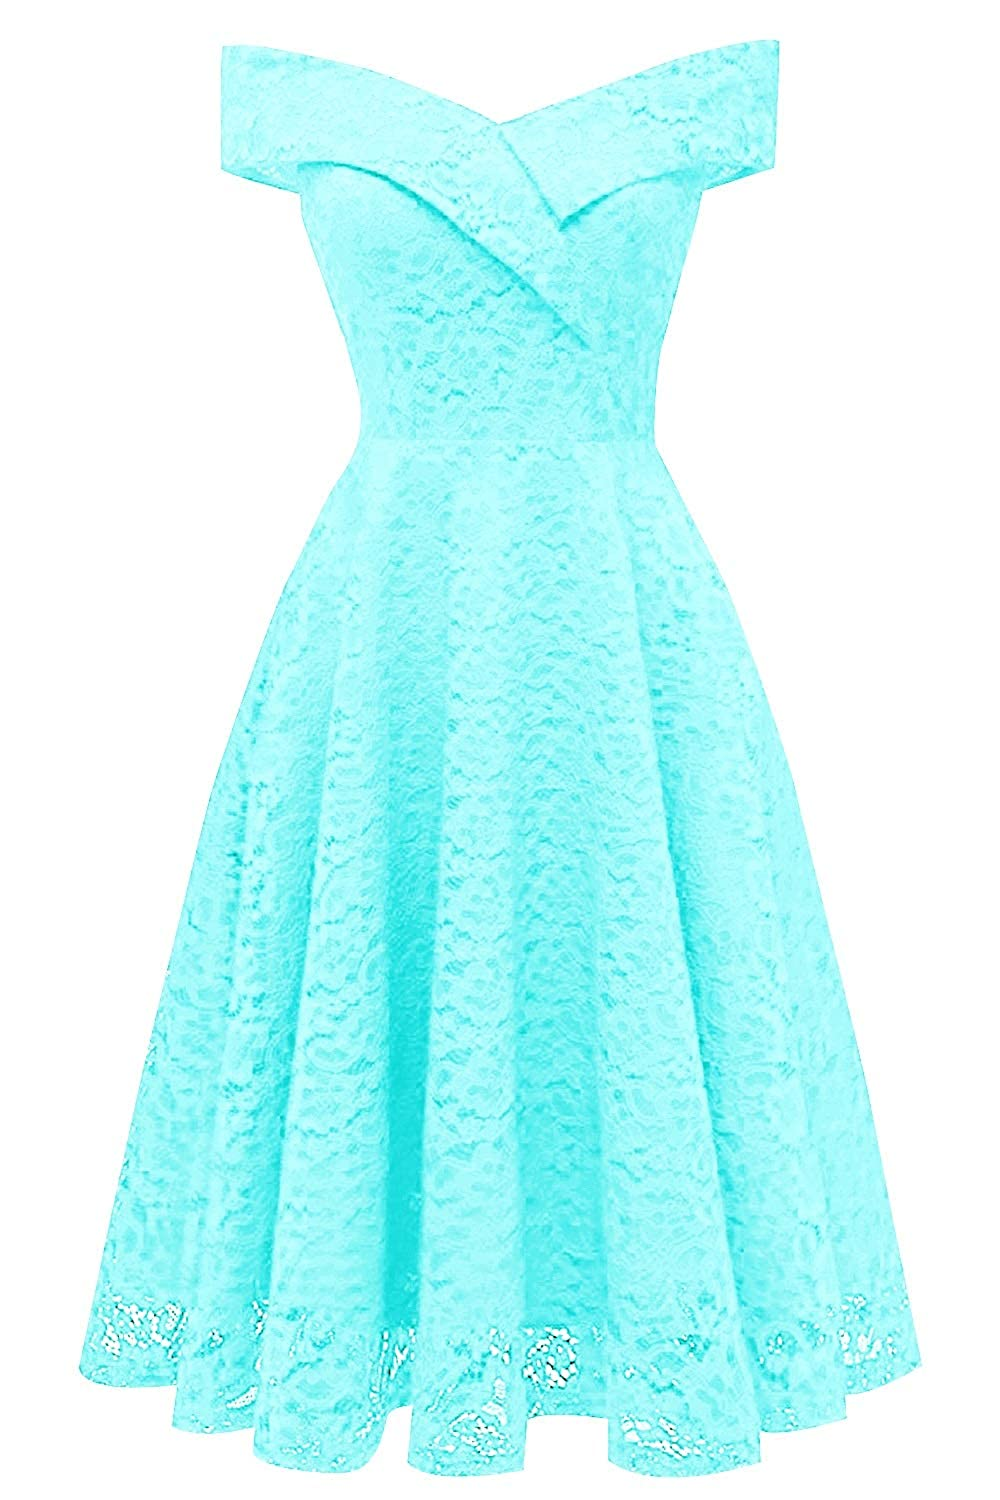 Ice bluee MorySong Women's Lace Off The Shoulder Knee Length Cocktail Homecoming Dress